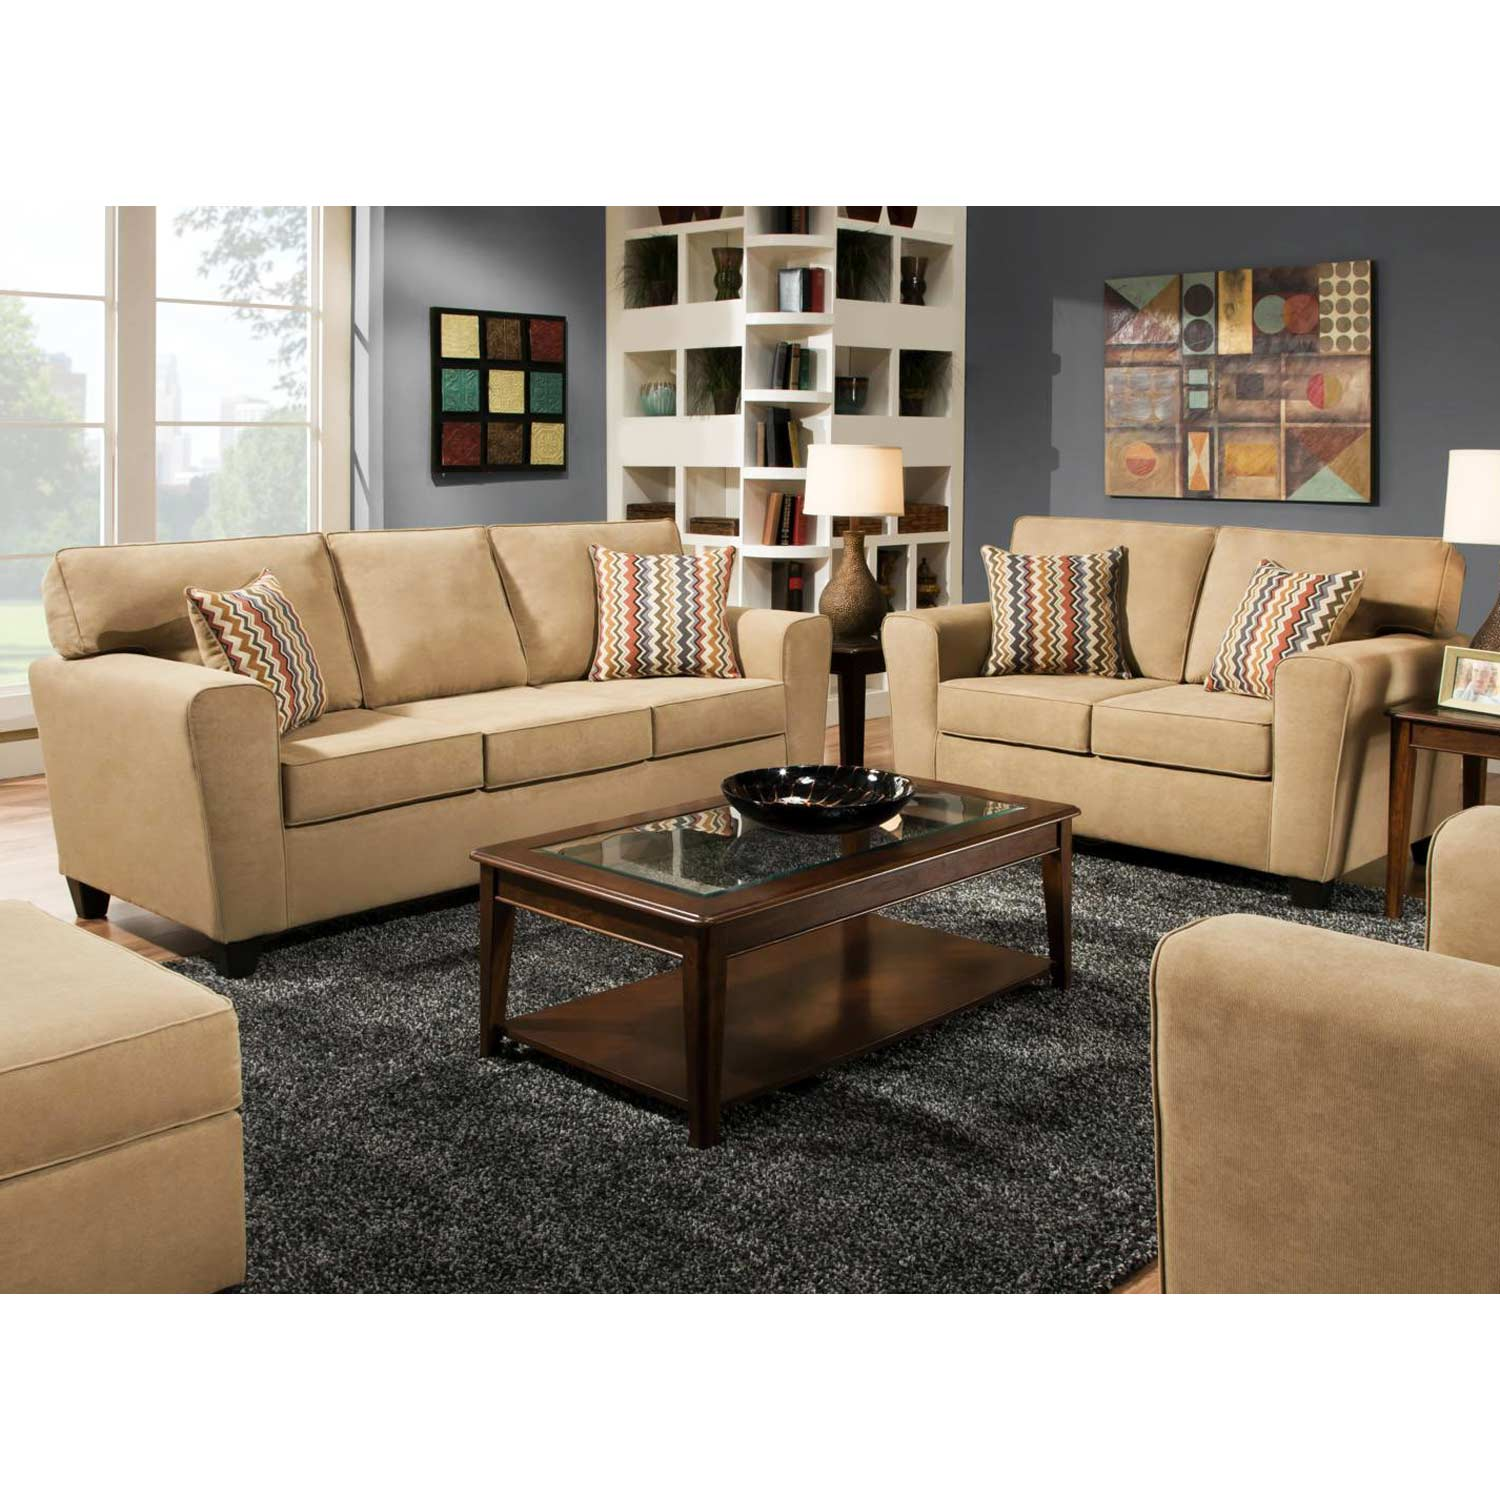 Half Furniture Outlet In Beaumont Franklin Living Room Chair And A Half U81788 Thomasville